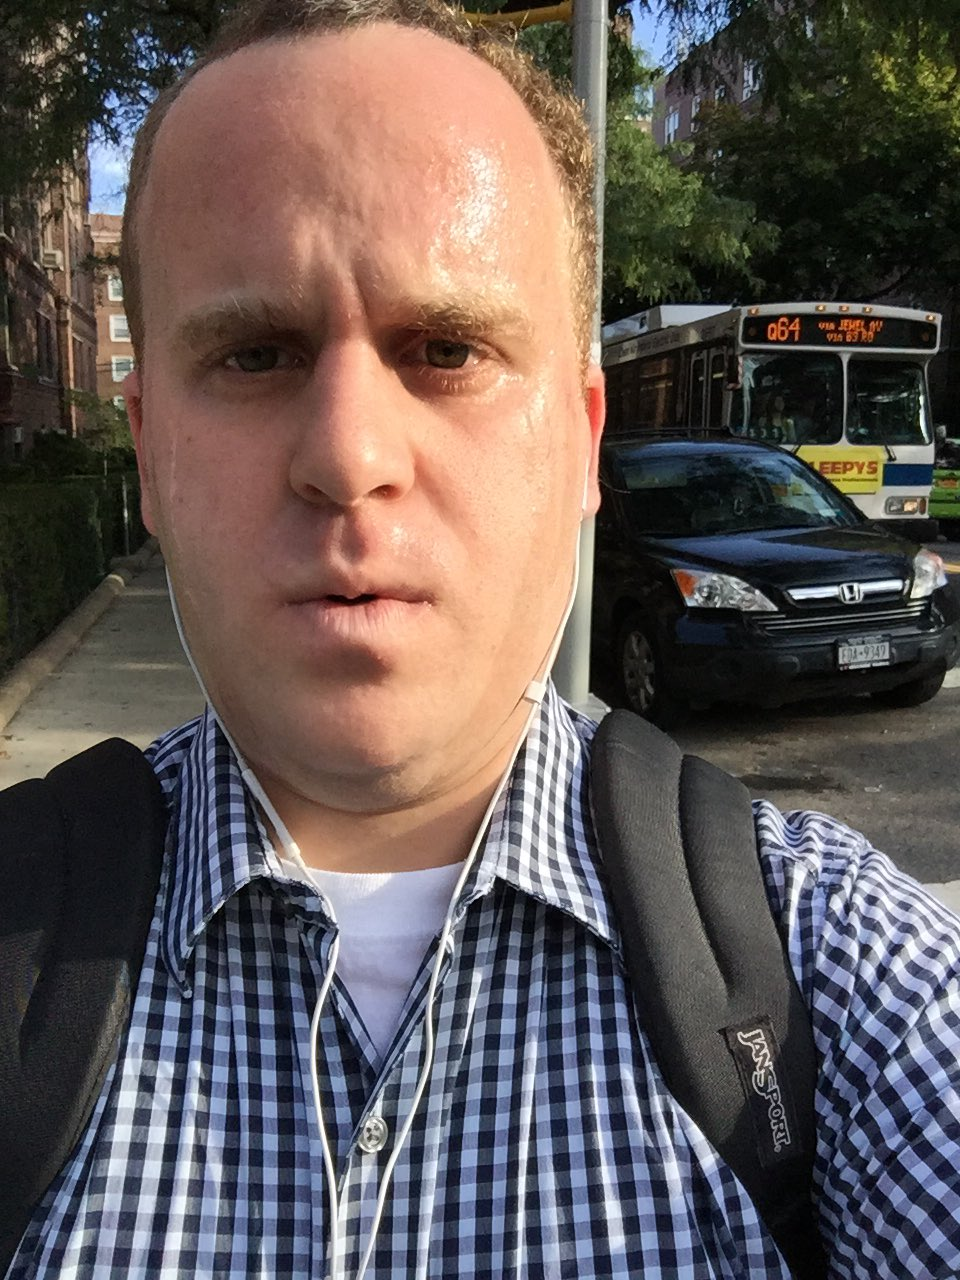 Selfie to the summit #NYCSchoolsTech https://t.co/h7Tdg3xhzv